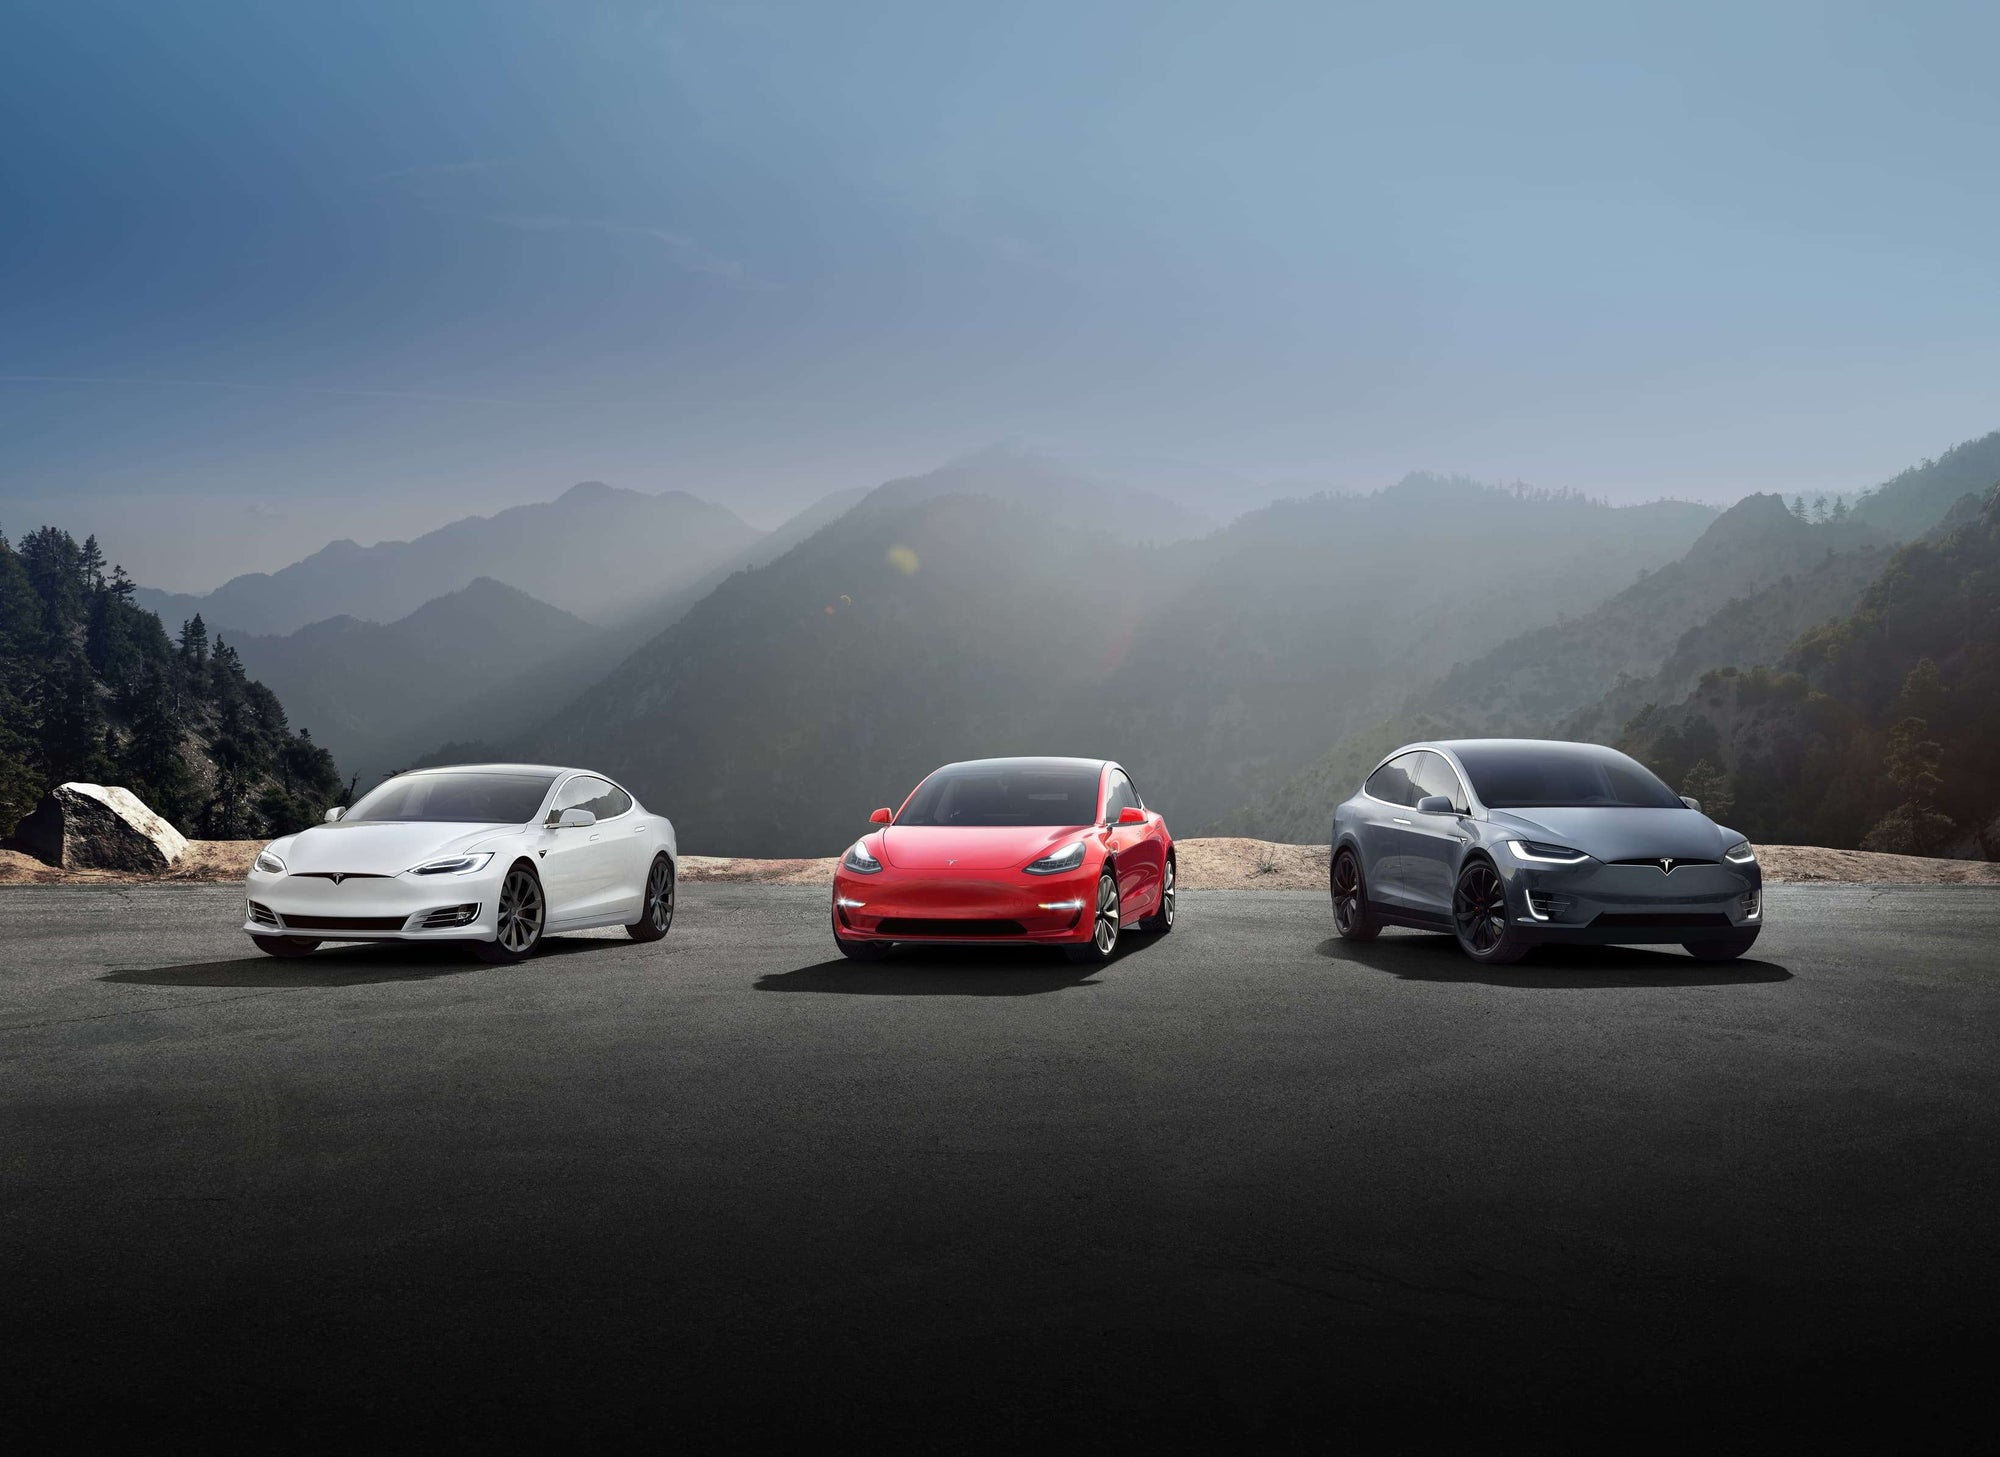 Tesla's Q4 Delivery Numbers: Shorts Predict Tesla's Yearly Goal Will Be Met